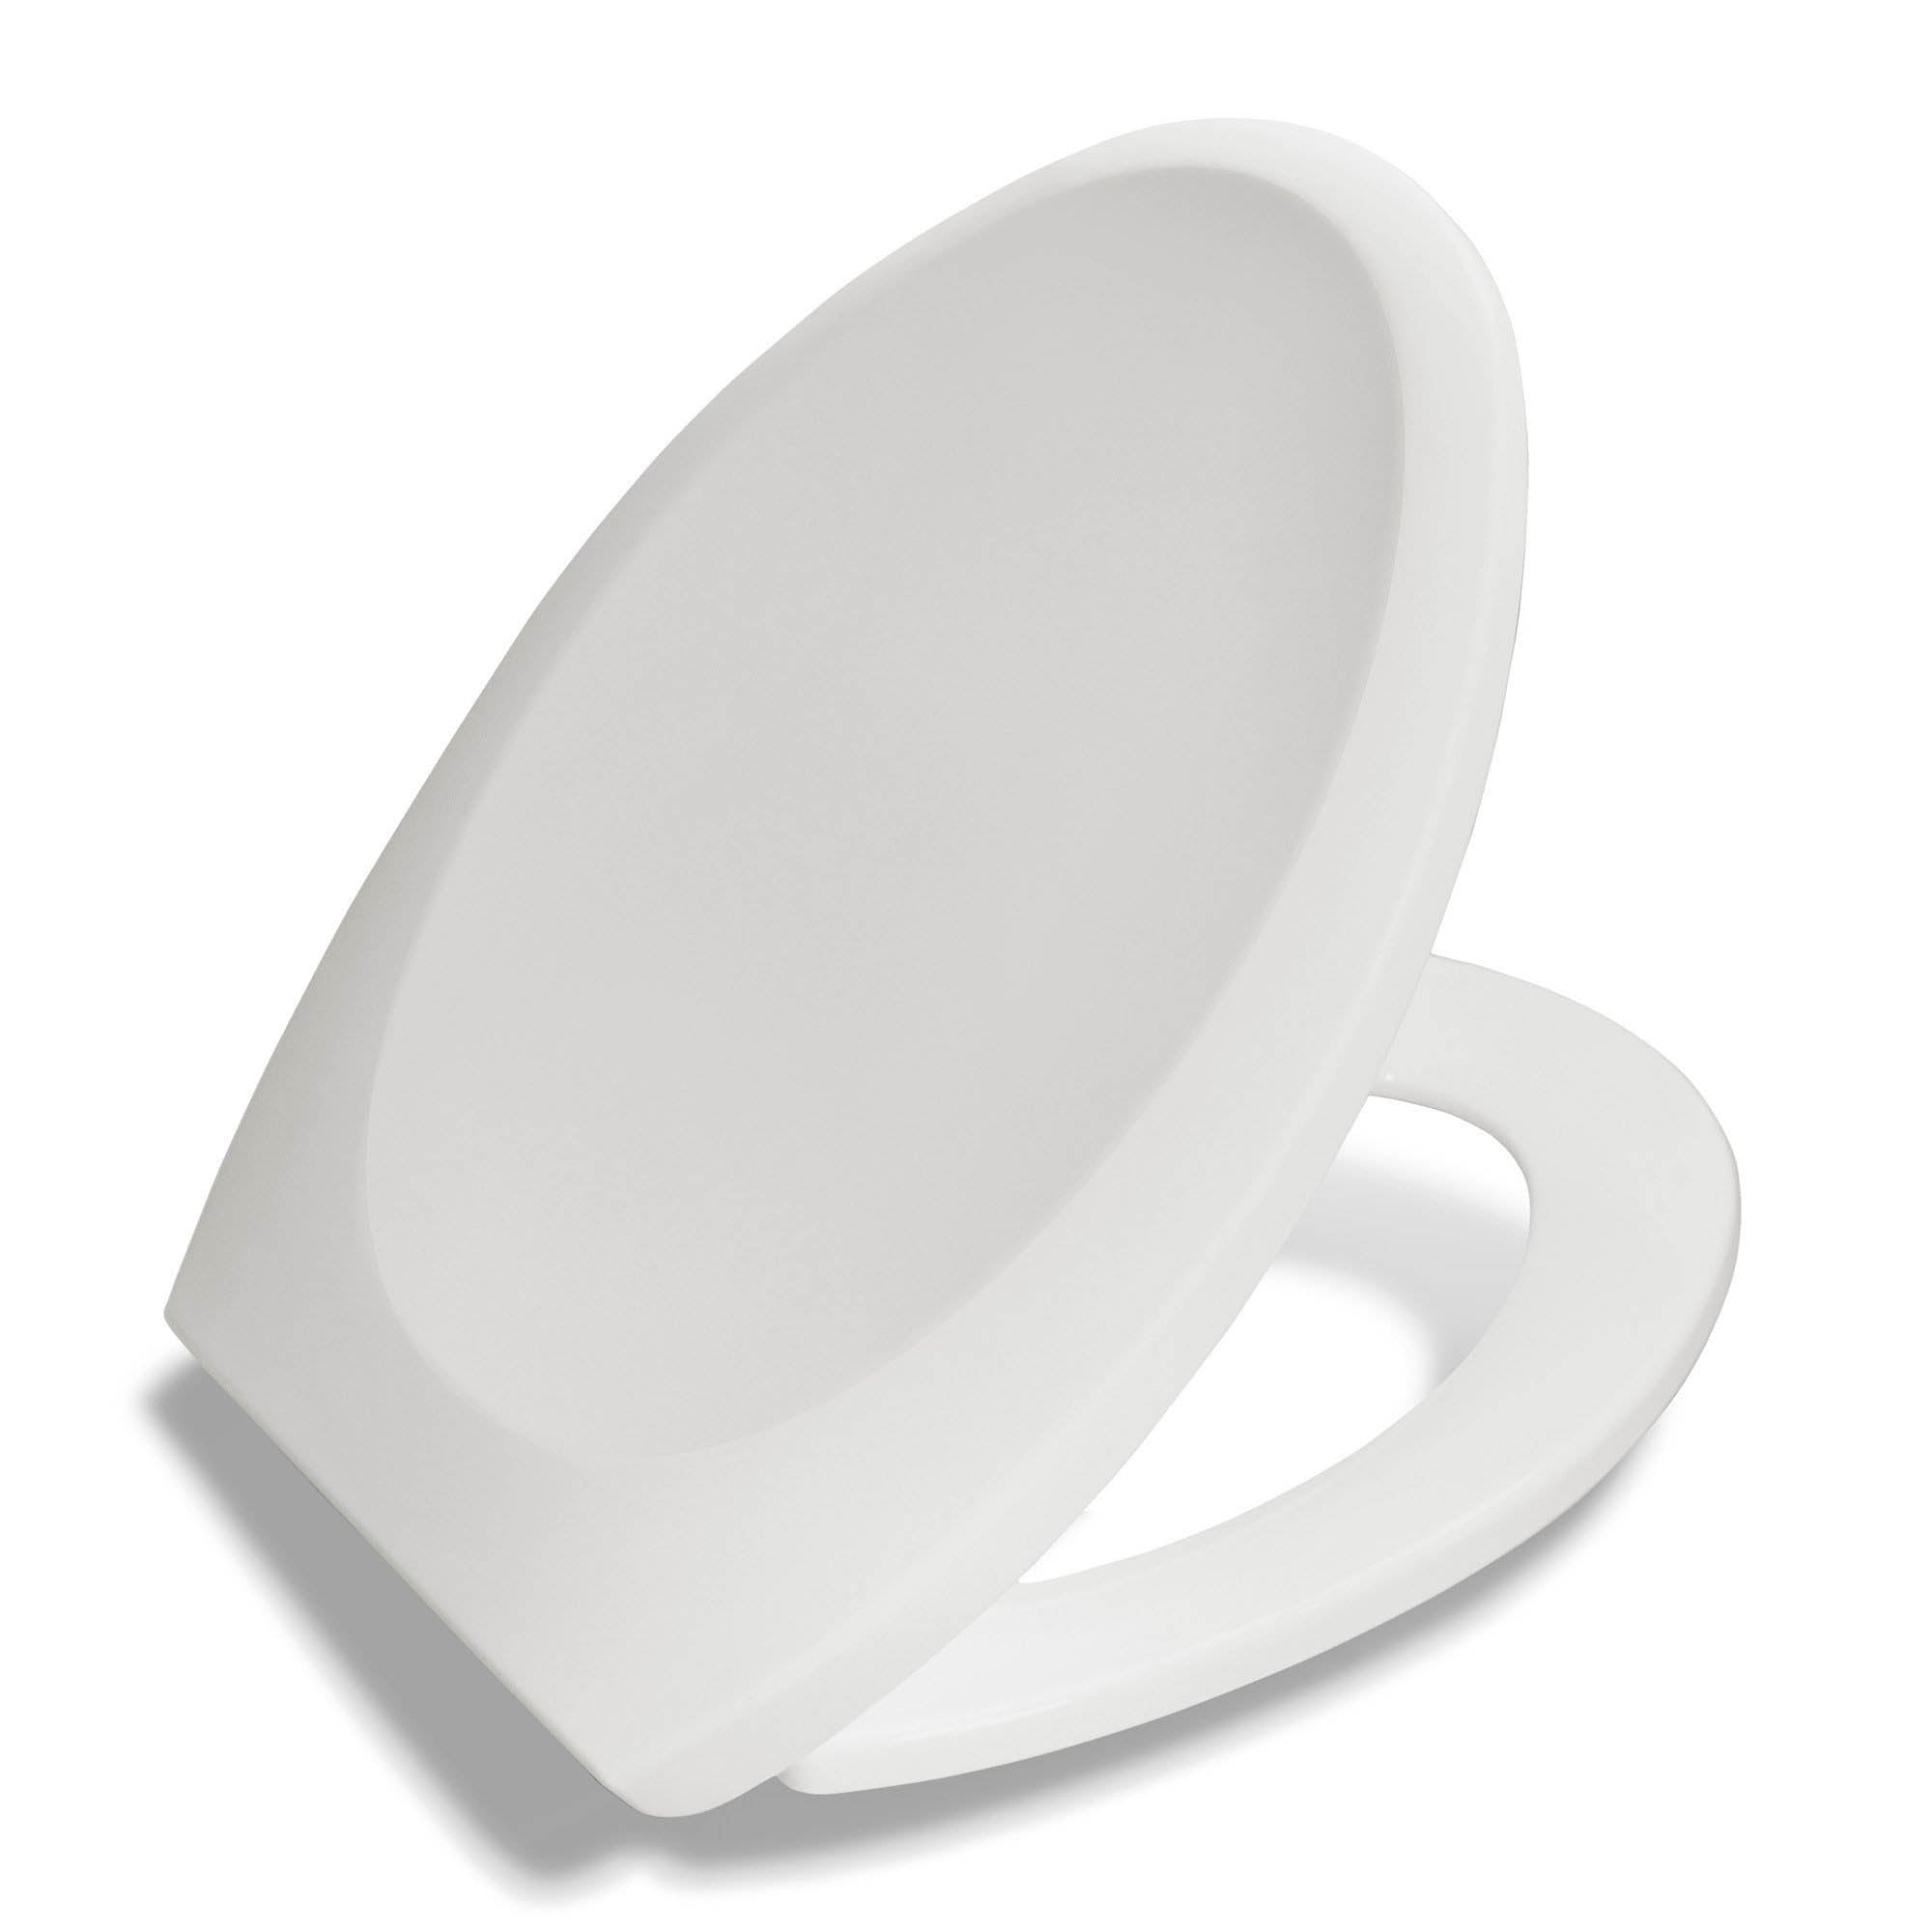 Superb Premium Toilet Seat With Cover Affordable High Quality Uwap Interior Chair Design Uwaporg